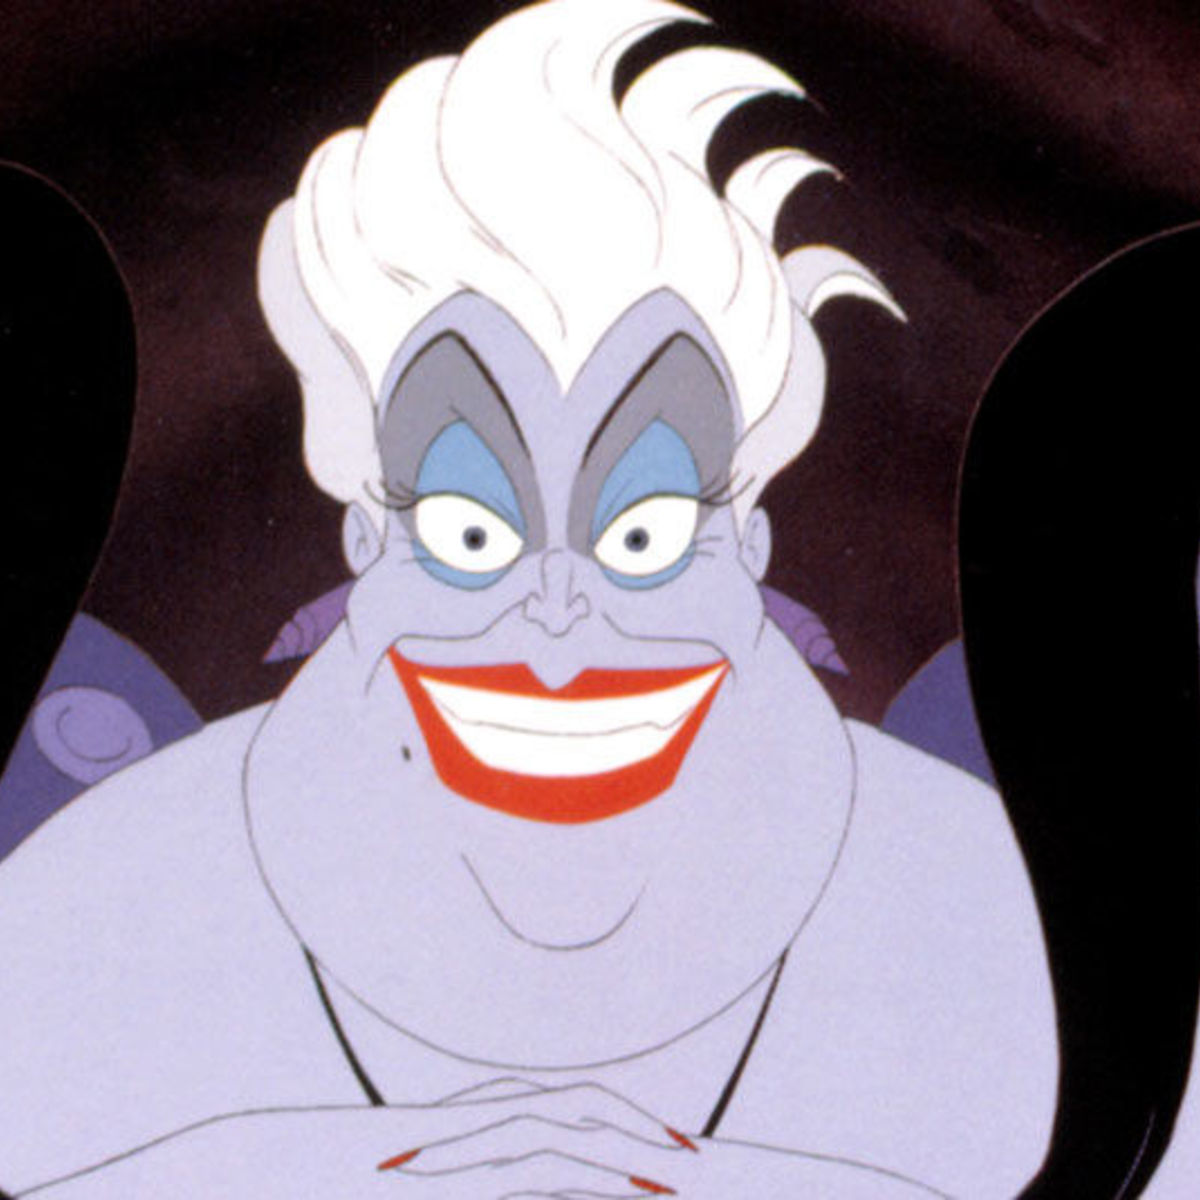 Ursula-LittleMermaid